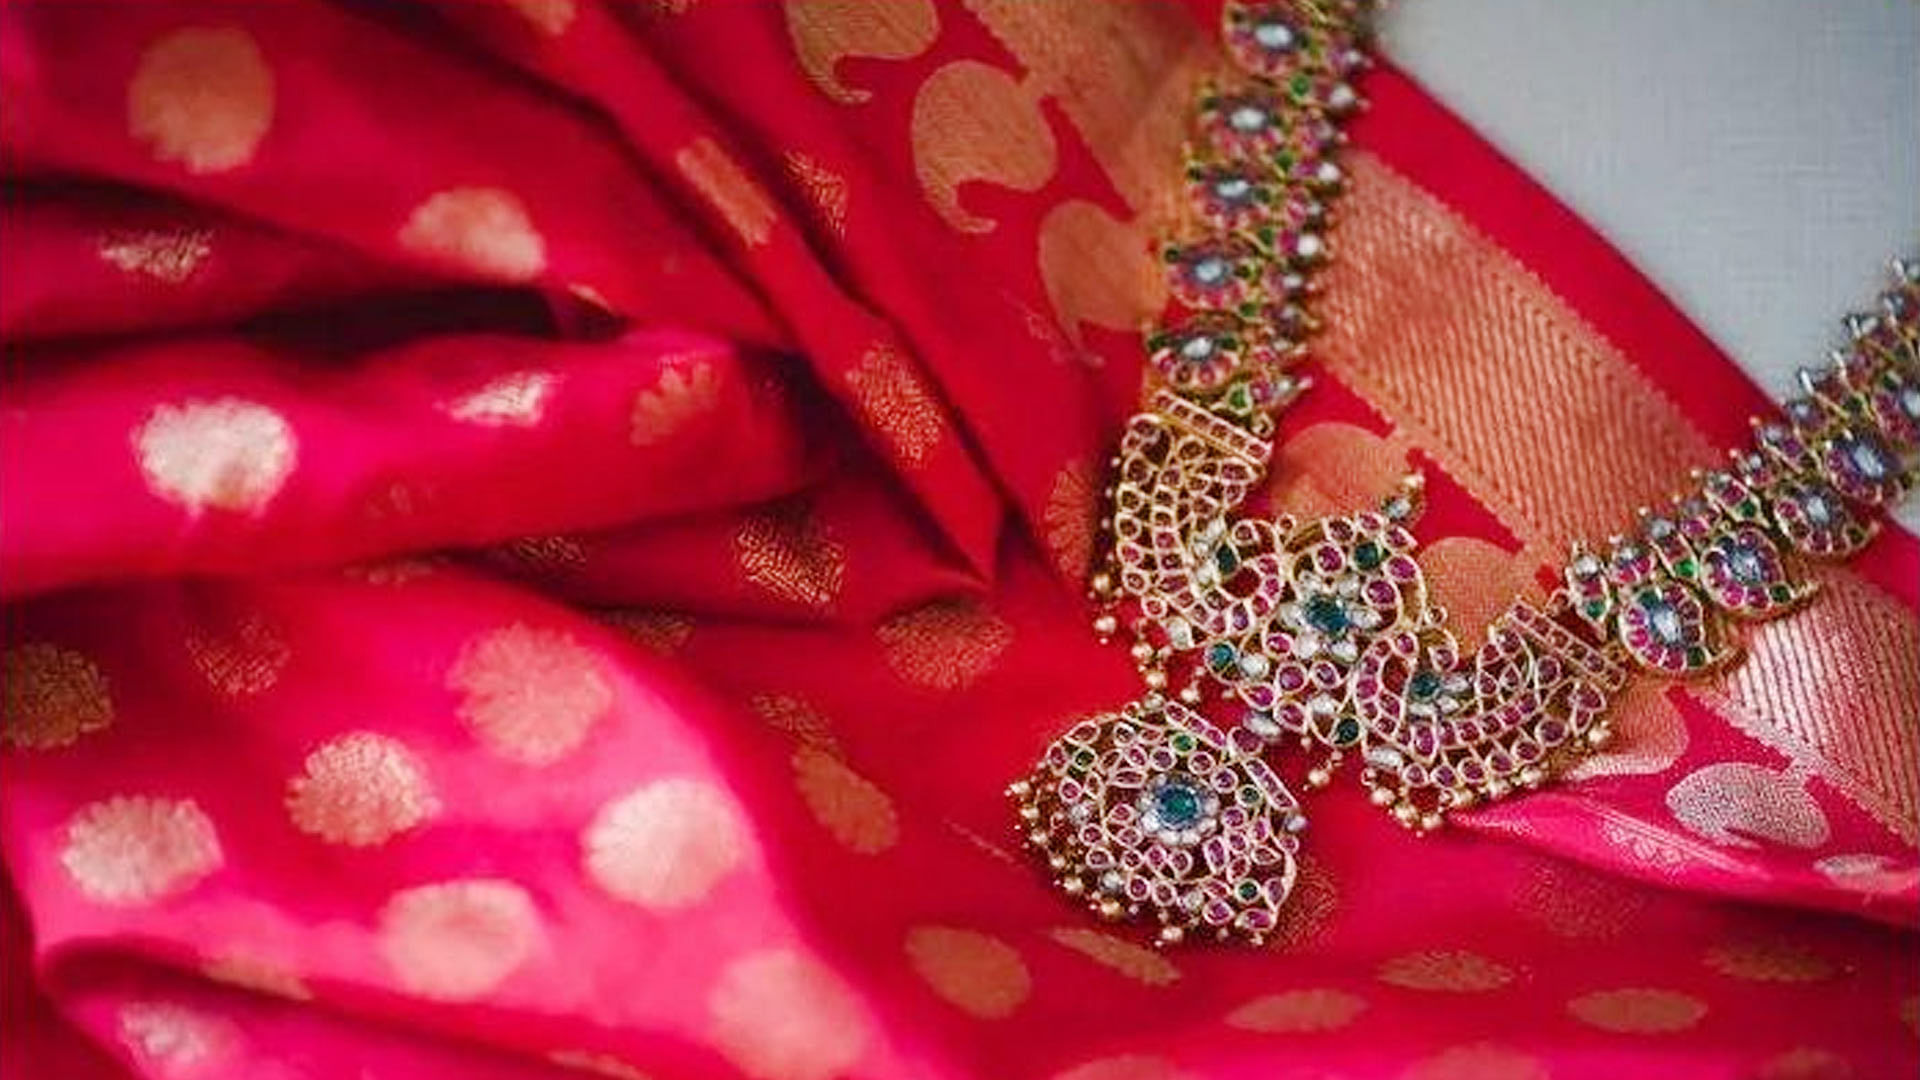 THE TALE OF THE BANARASI SAREE